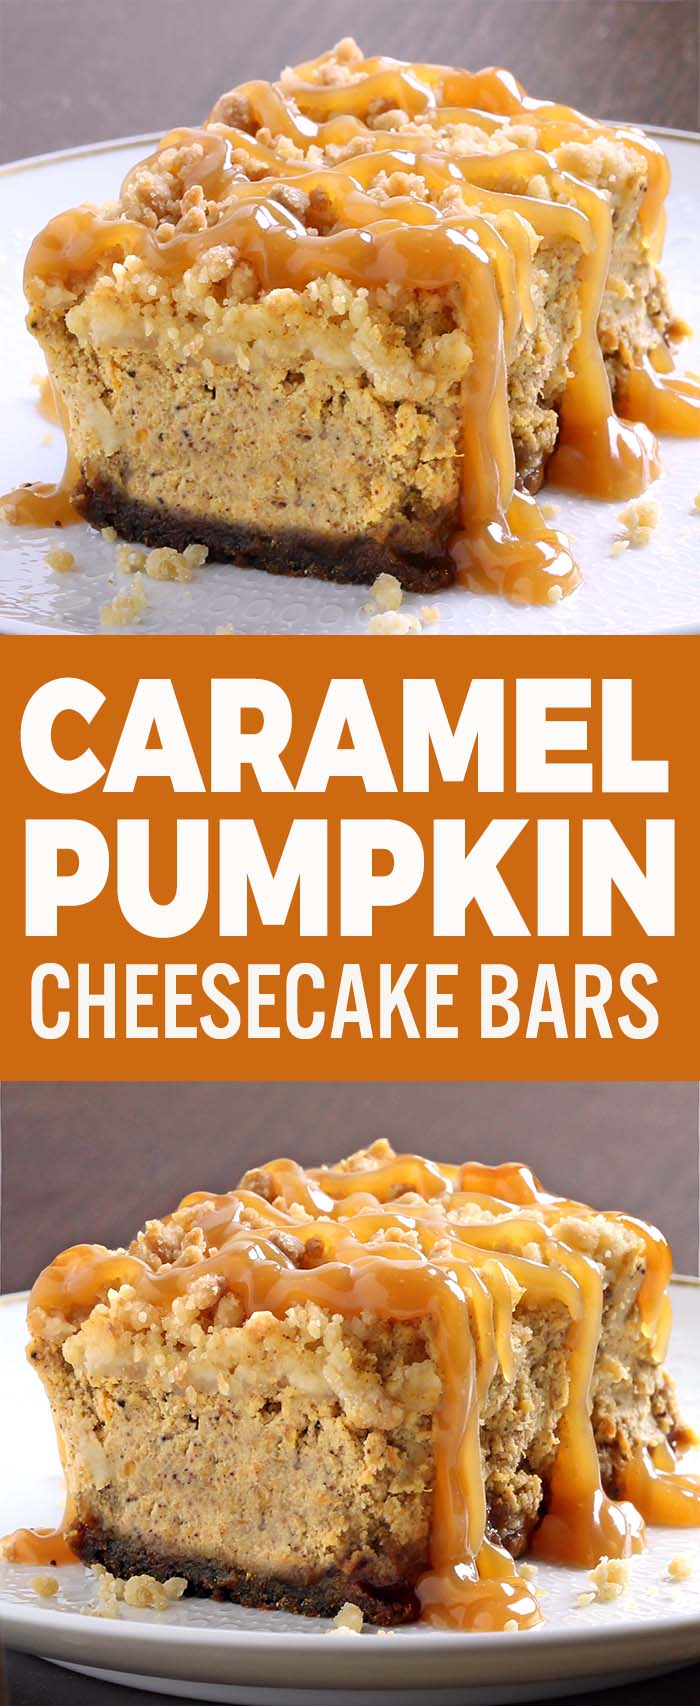 Creamy, rich pumpkin cheesecake with chewy gingersnap crust, topped with crumbly, buttery streusel and drizzled with caramel make these CARAMEL PUMPKIN CHEESECAKE BARS out-of-this-world delicious!